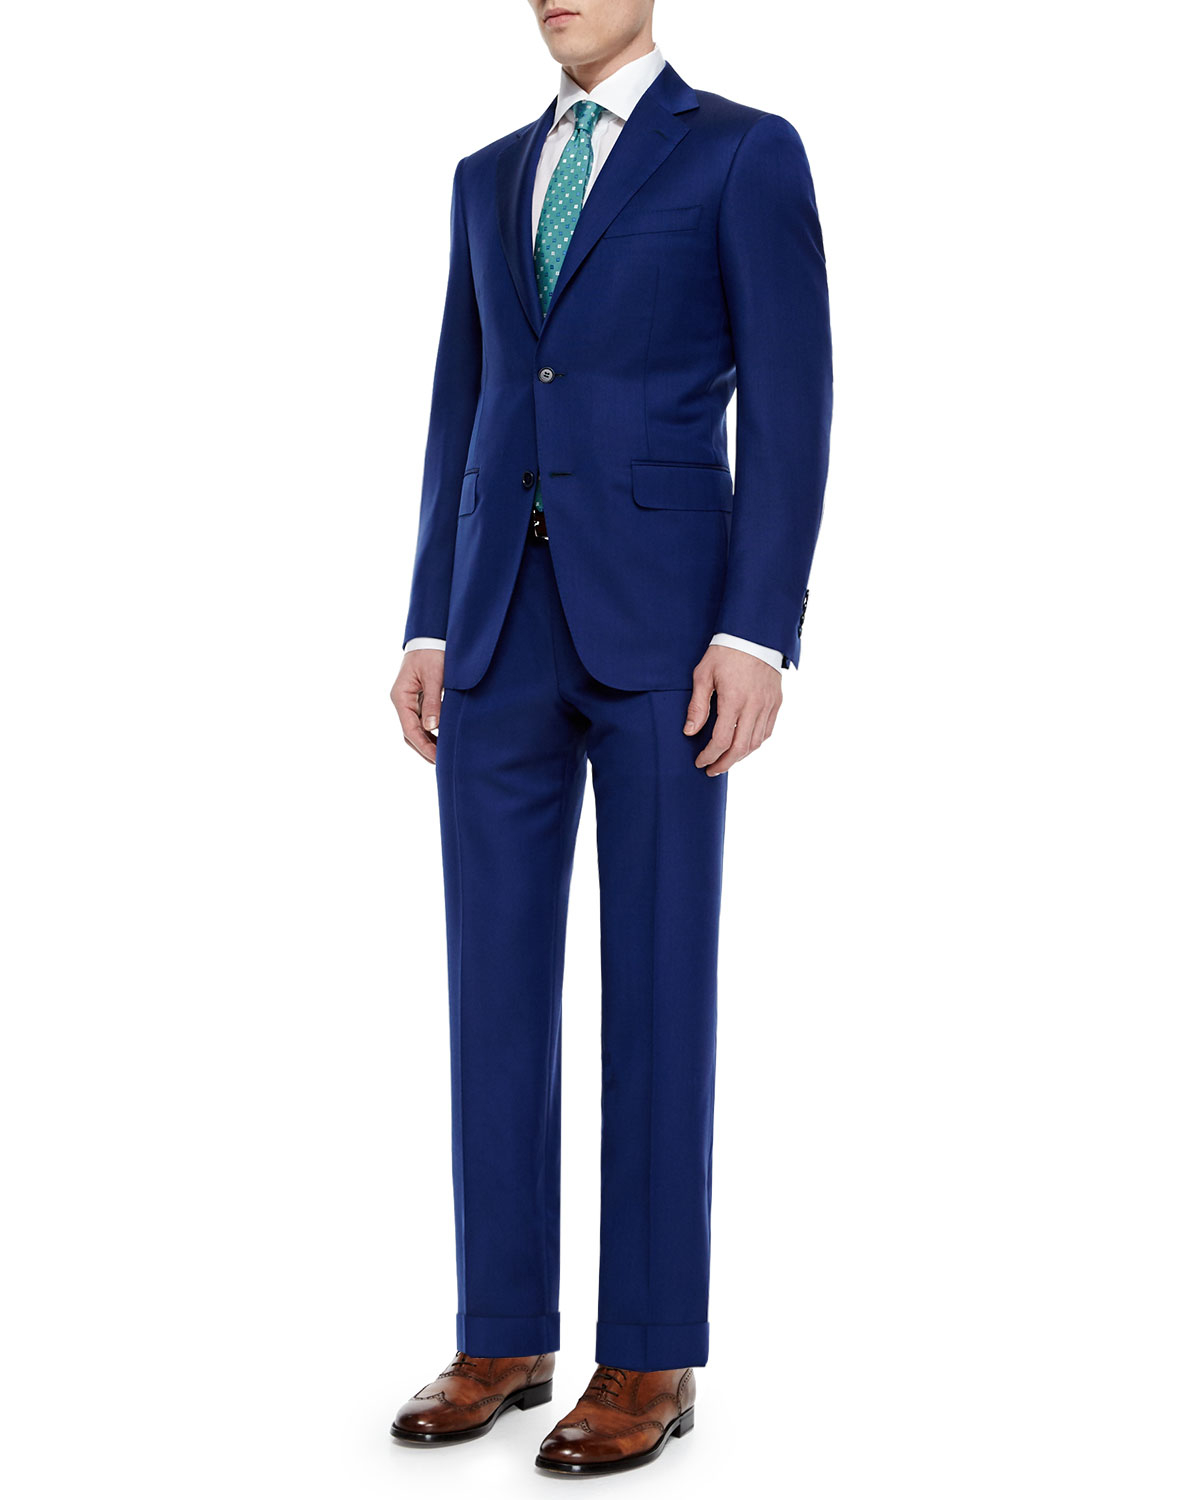 Find great deals on eBay for mens two piece suit. Shop with confidence.